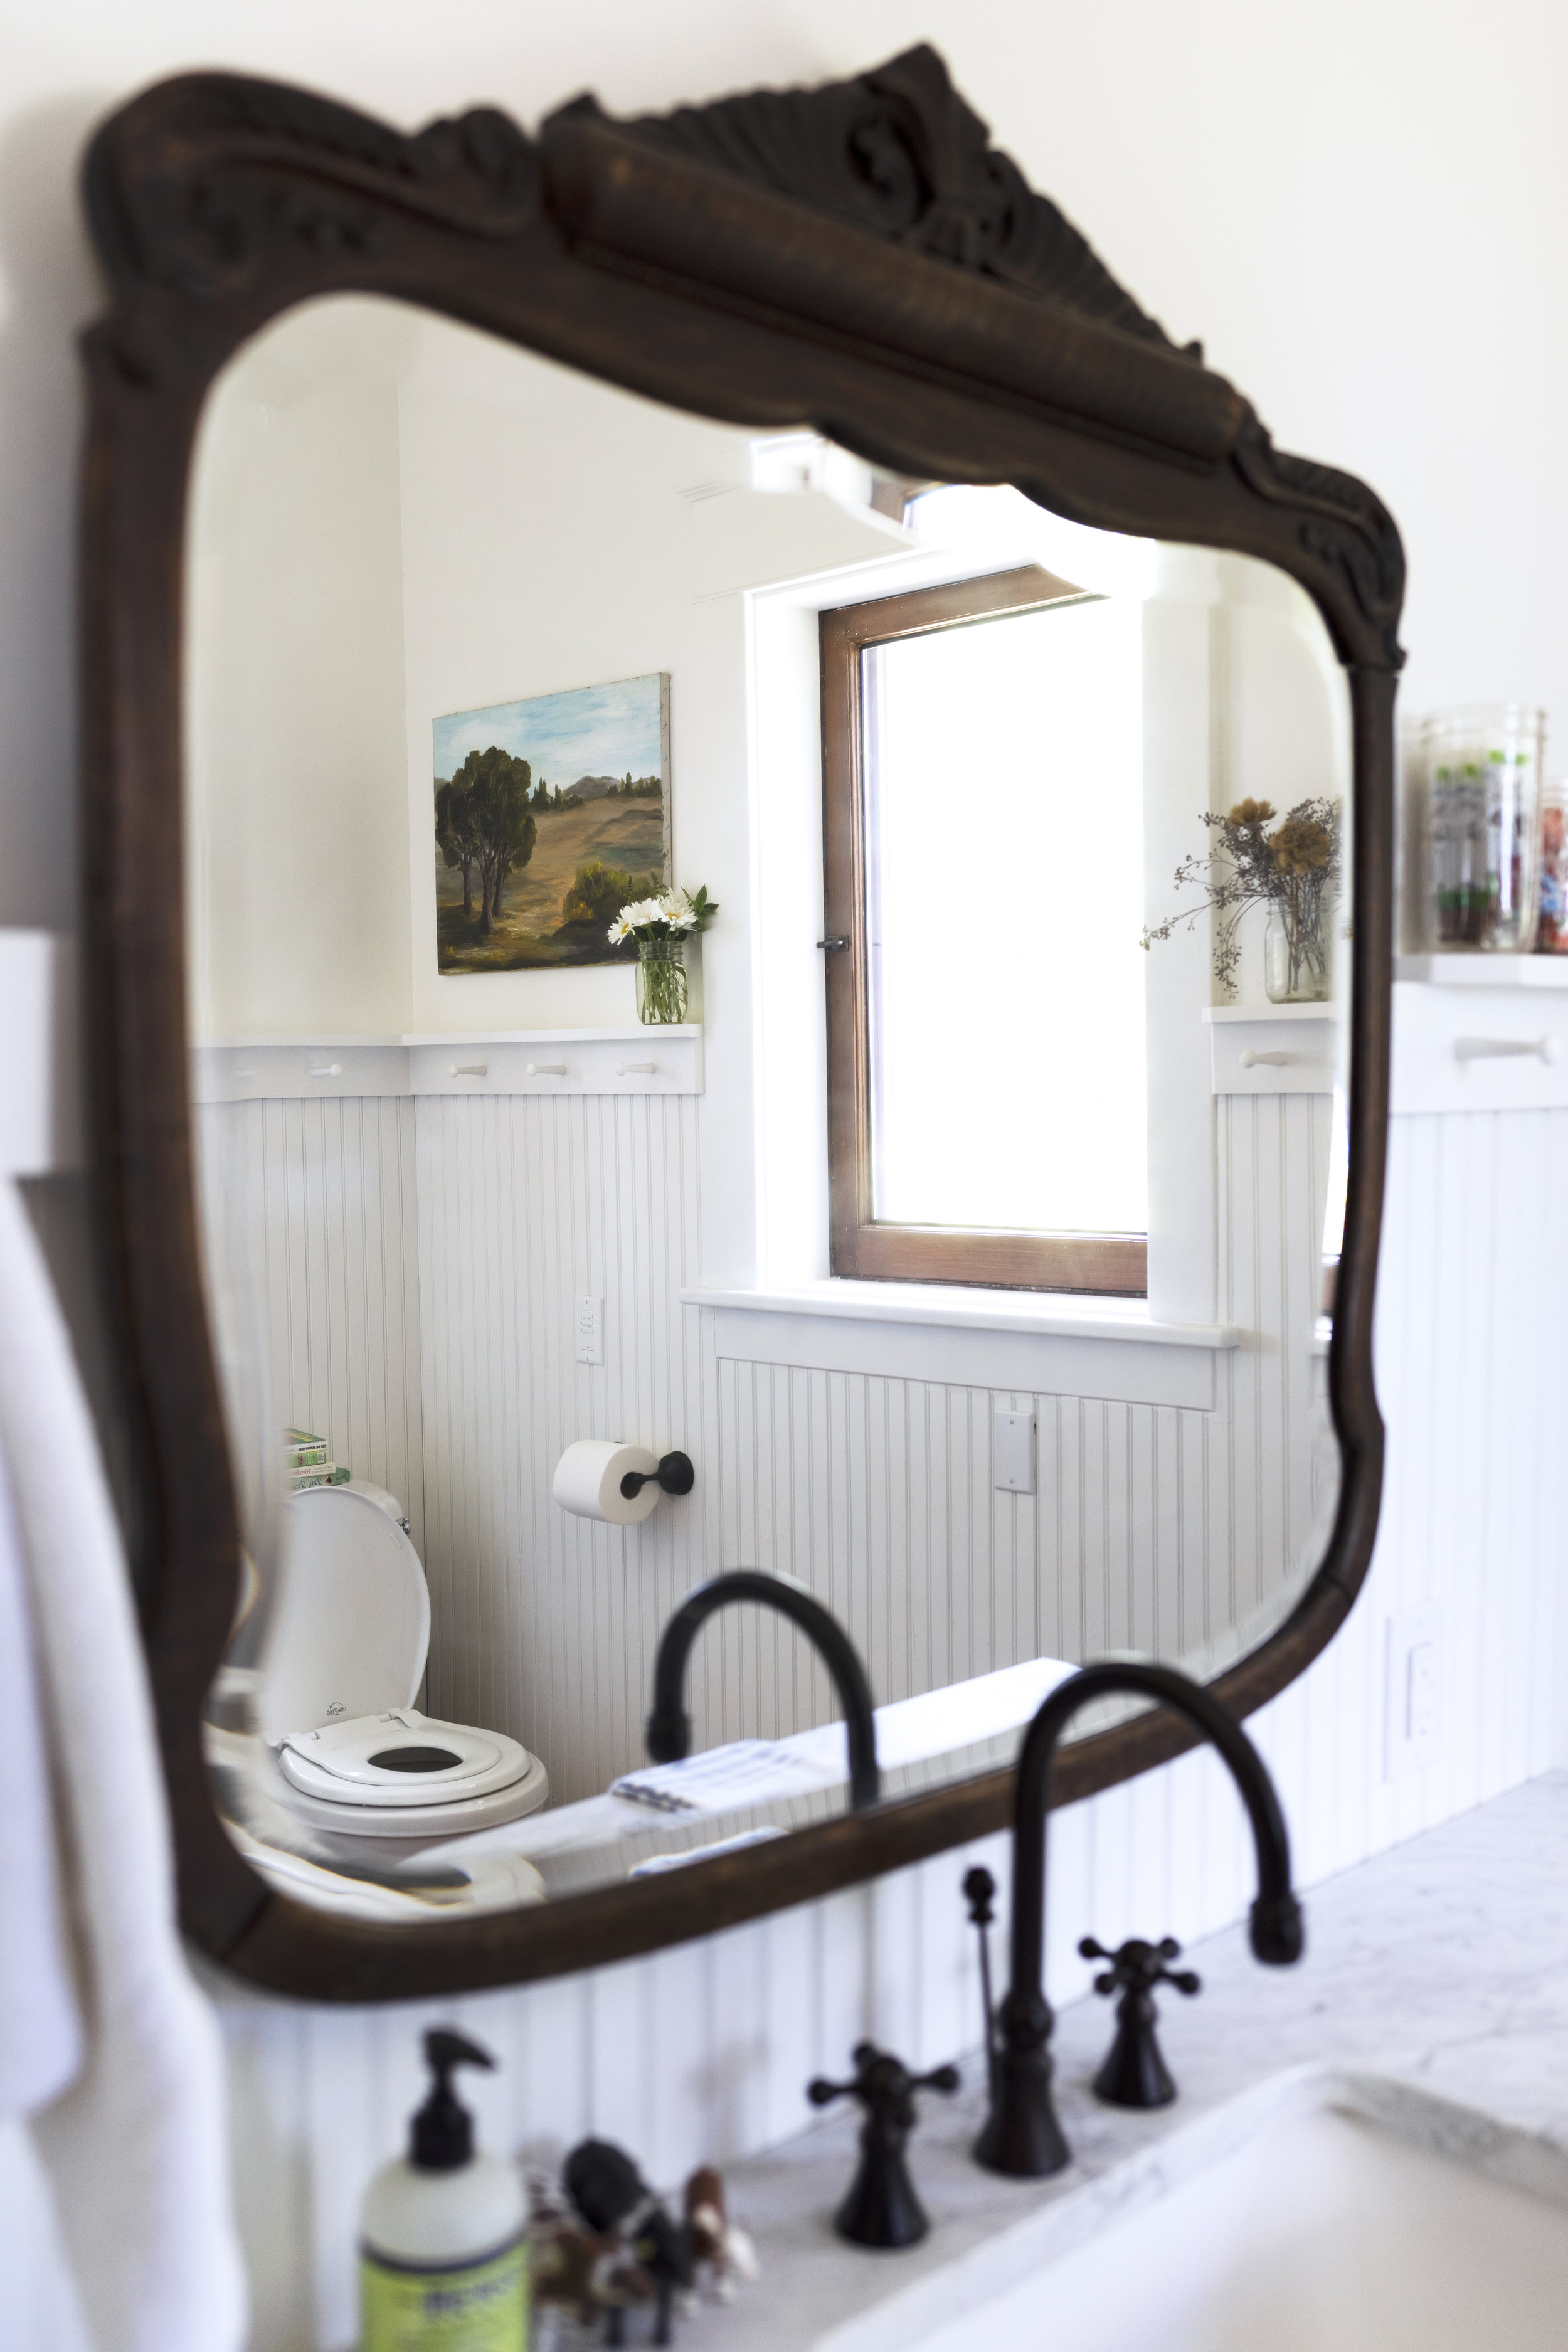 The Grit and Polish - Farmhouse Bathroom Potty Training 6.jpg